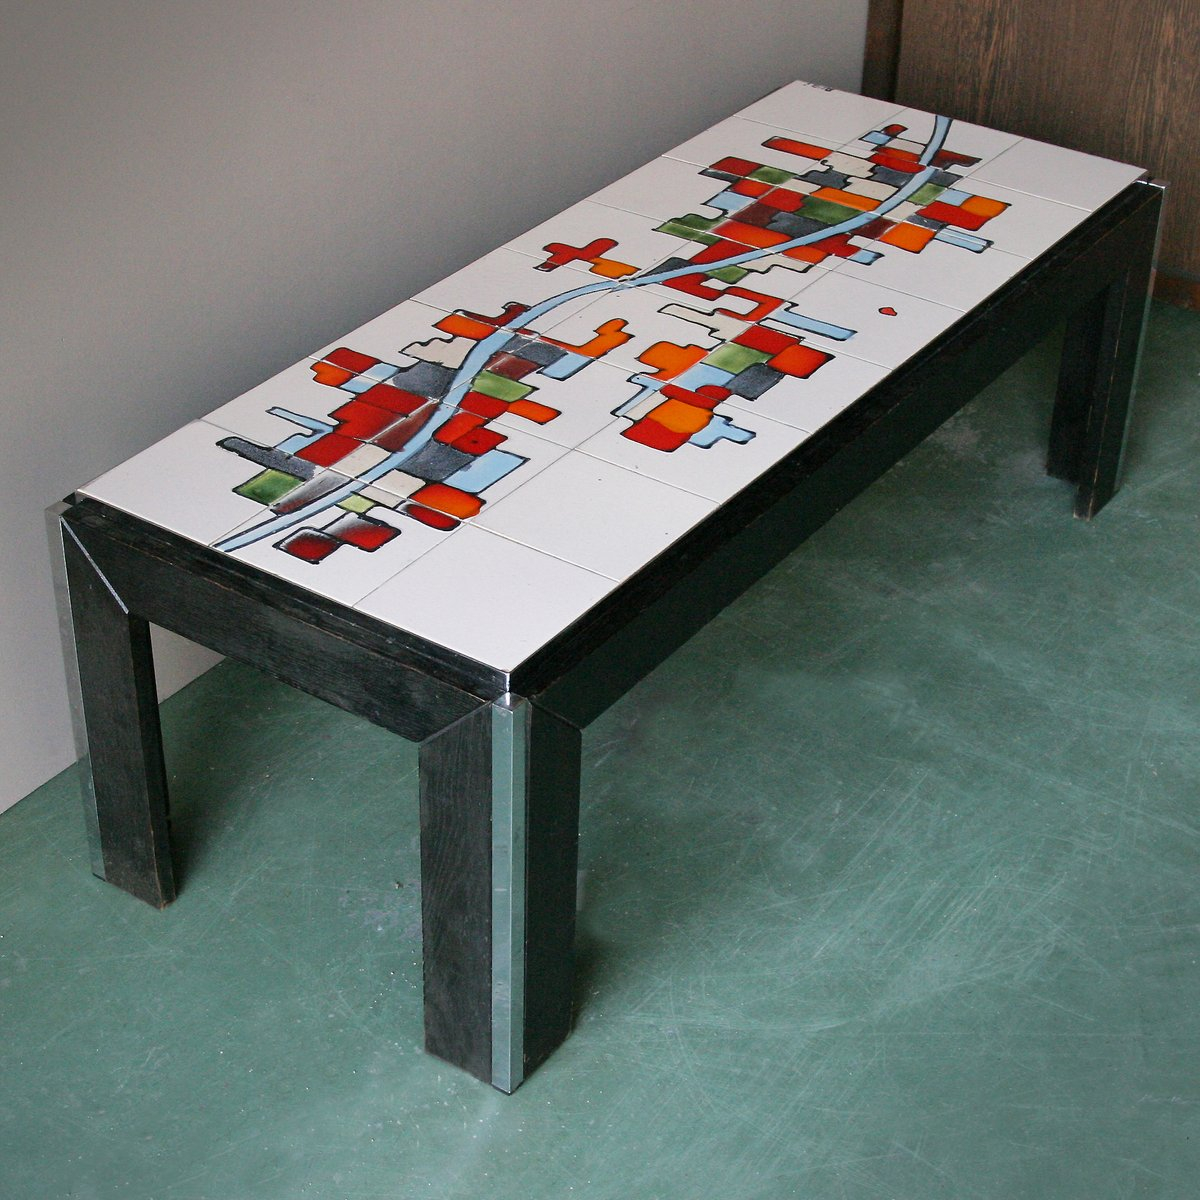 Ceramic tile top coffee table from adri belgique for sale at pamono ceramic tile top coffee table from adri belgique 8 60000 geotapseo Choice Image